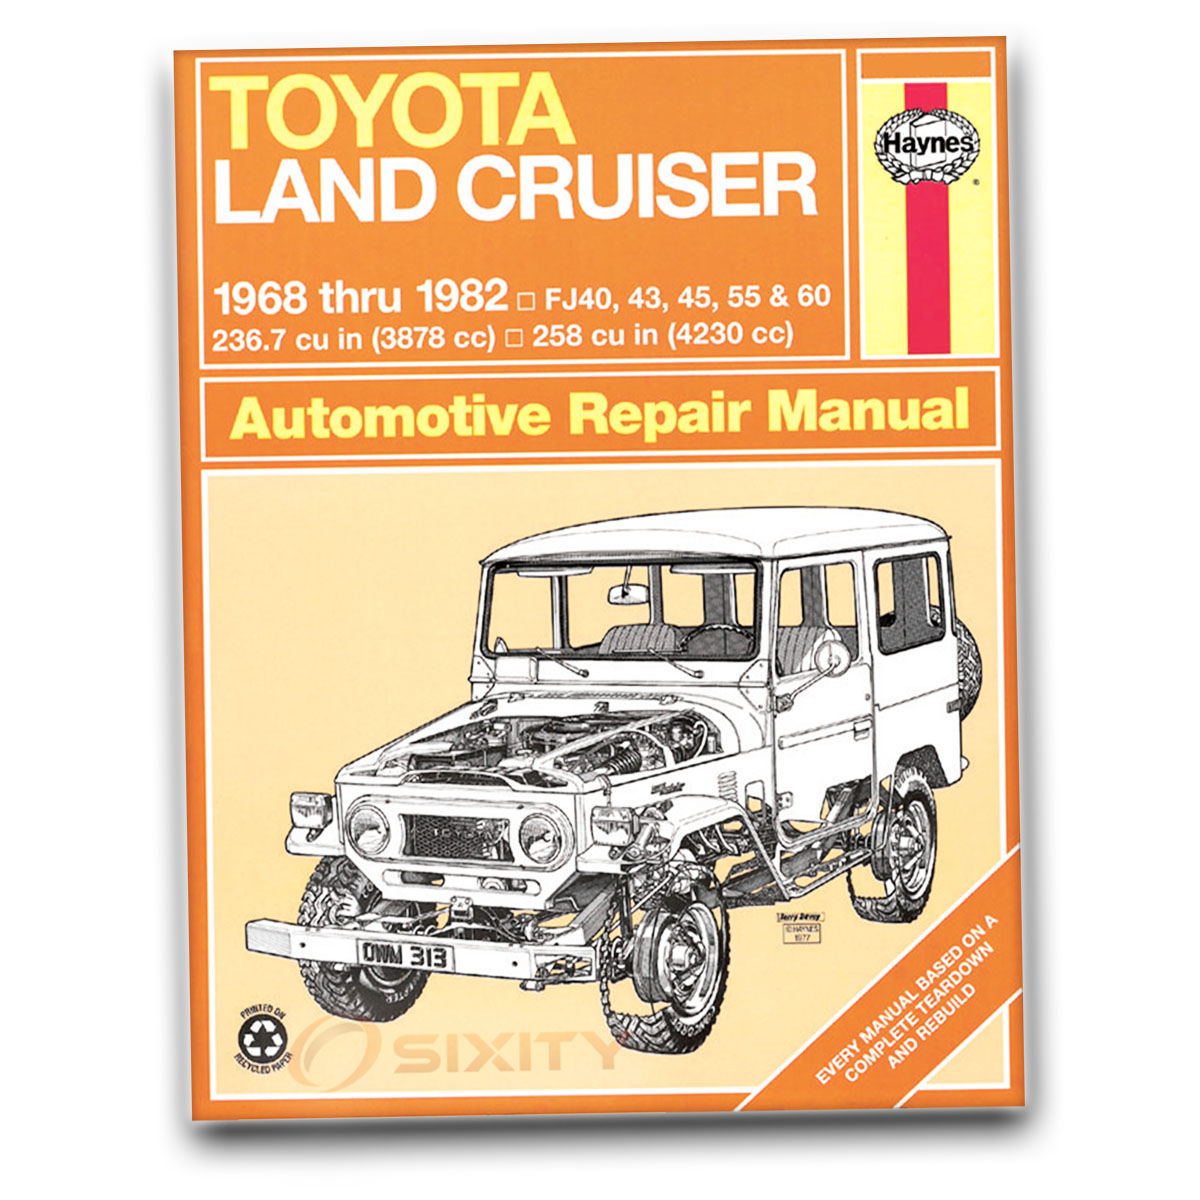 Haynes Repair Manual 92055 For Toyota Land Cruiser Fj40 43 45 55 60 2000 Tundra Electrical Schematics 1563920239 038345003134